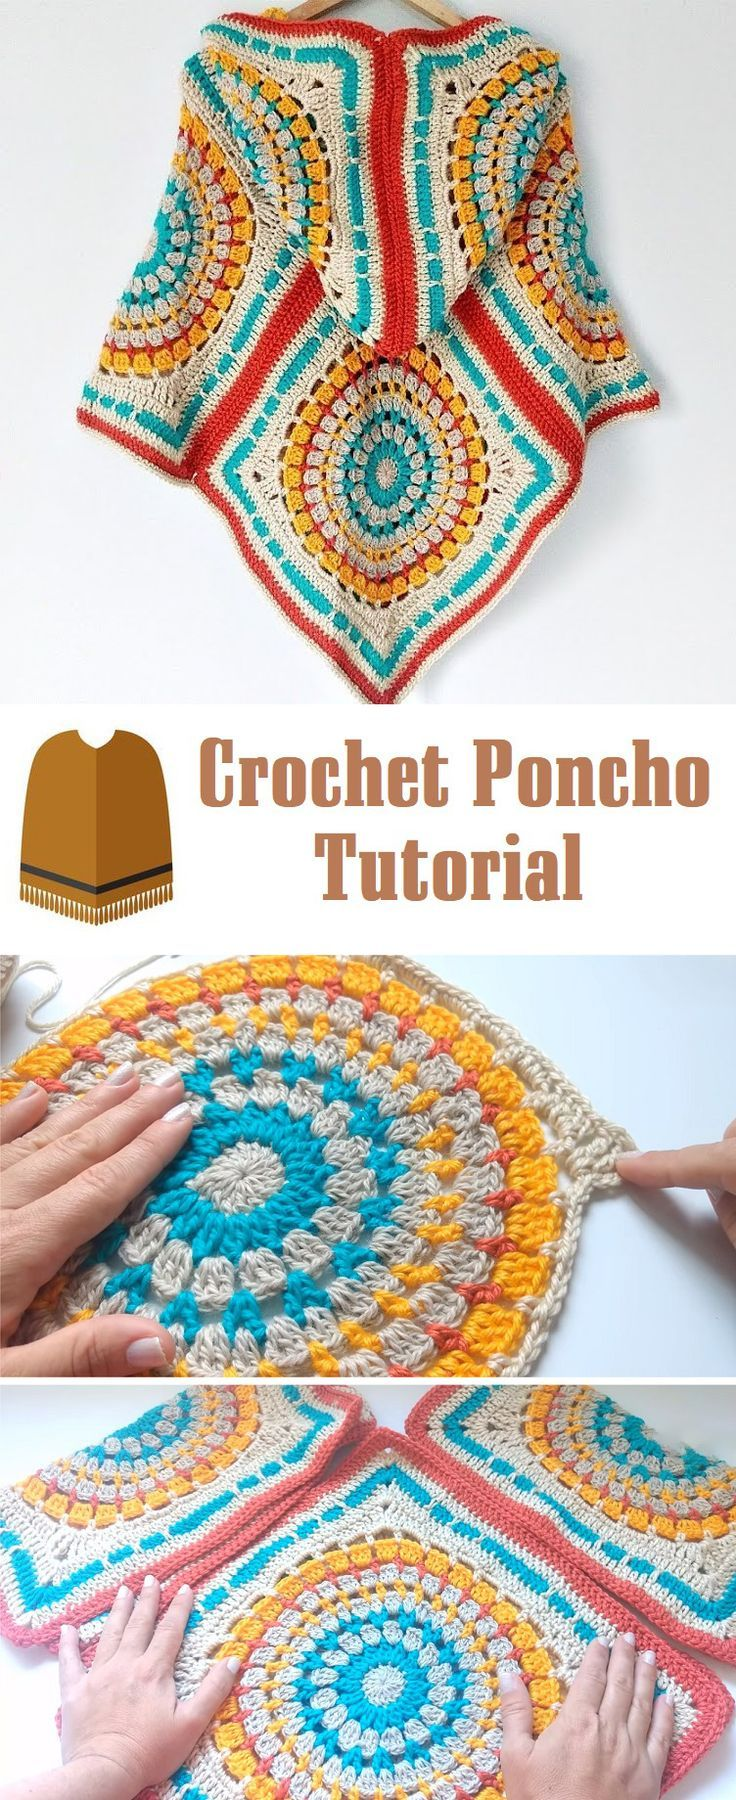 How to Crochet a Poncho - Design Peak